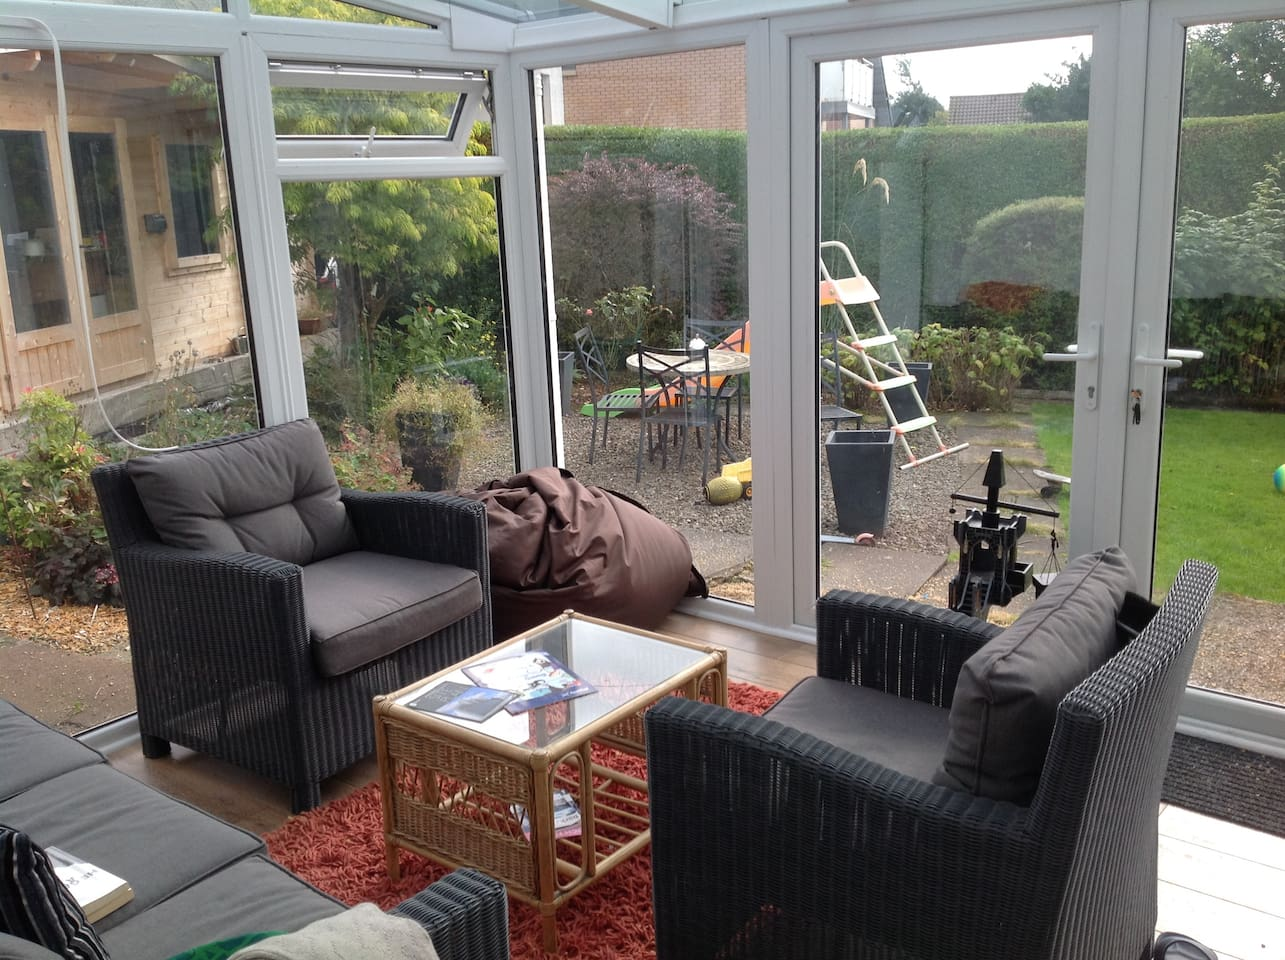 Conservatory opening into shared garden.